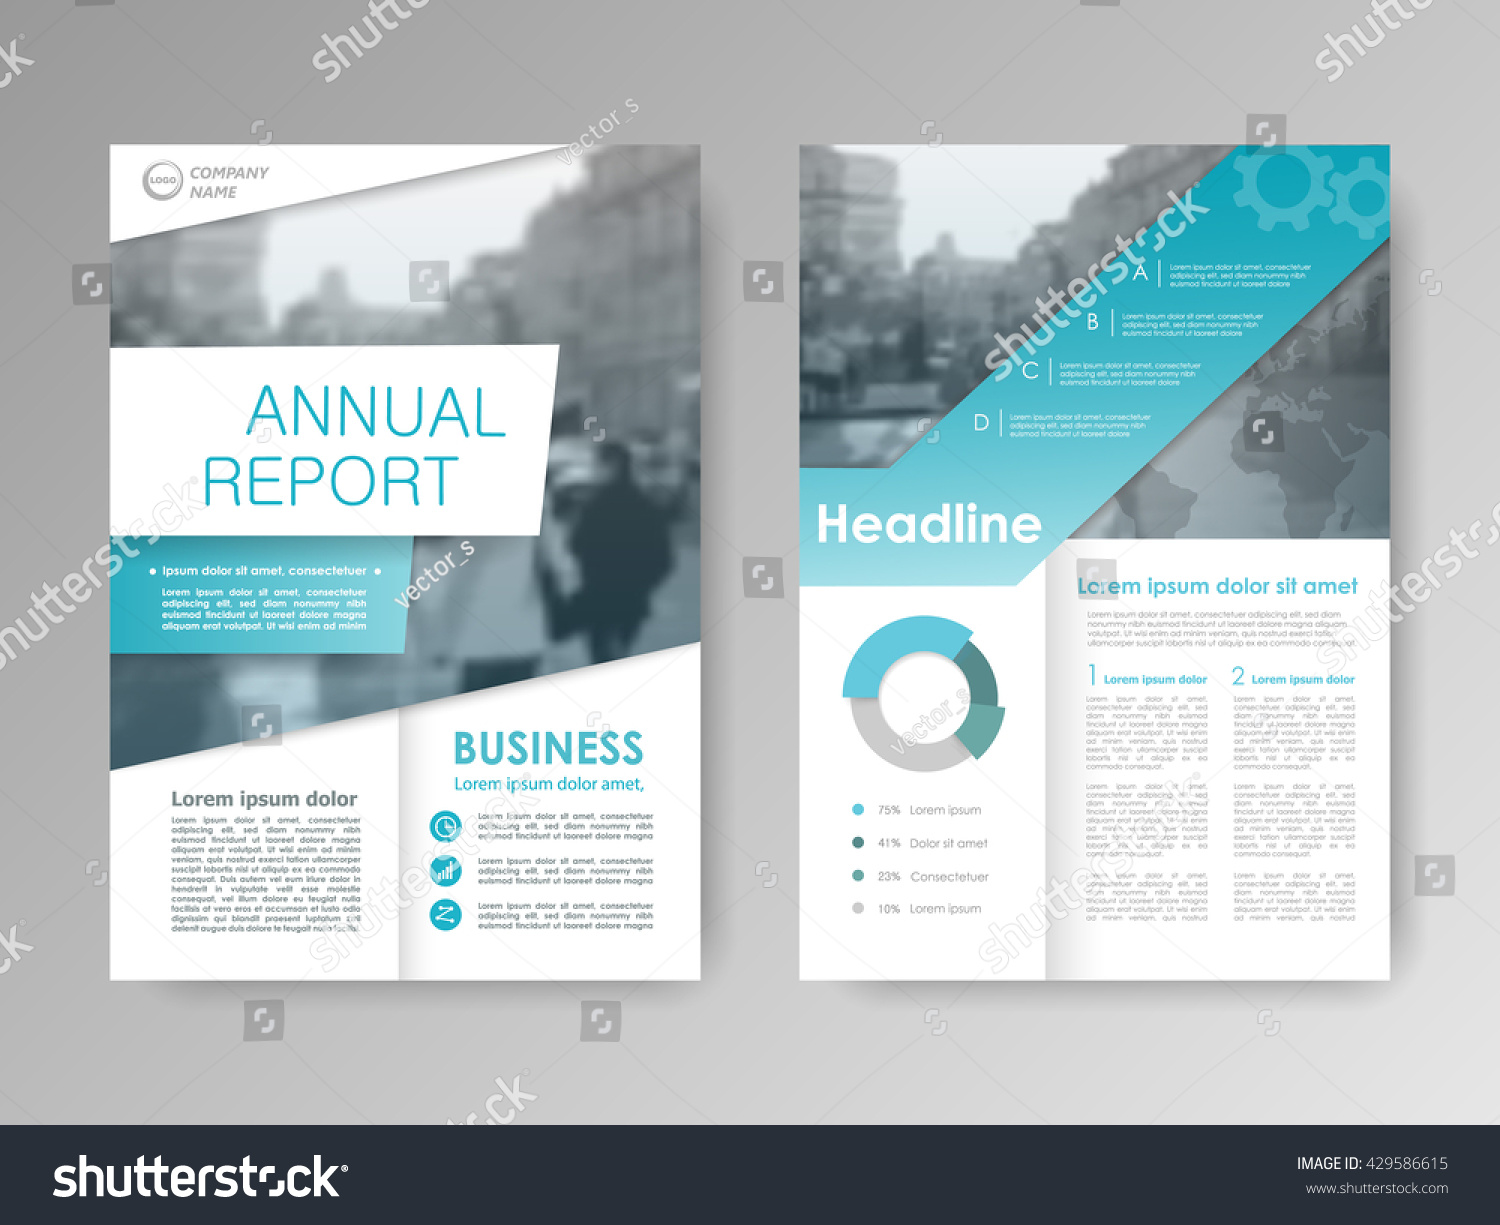 royalty annual report flyer presentation 429586615 stock front page report book cover layout design design layout template in a4 size abstract business templates cover elements infographic stock vector